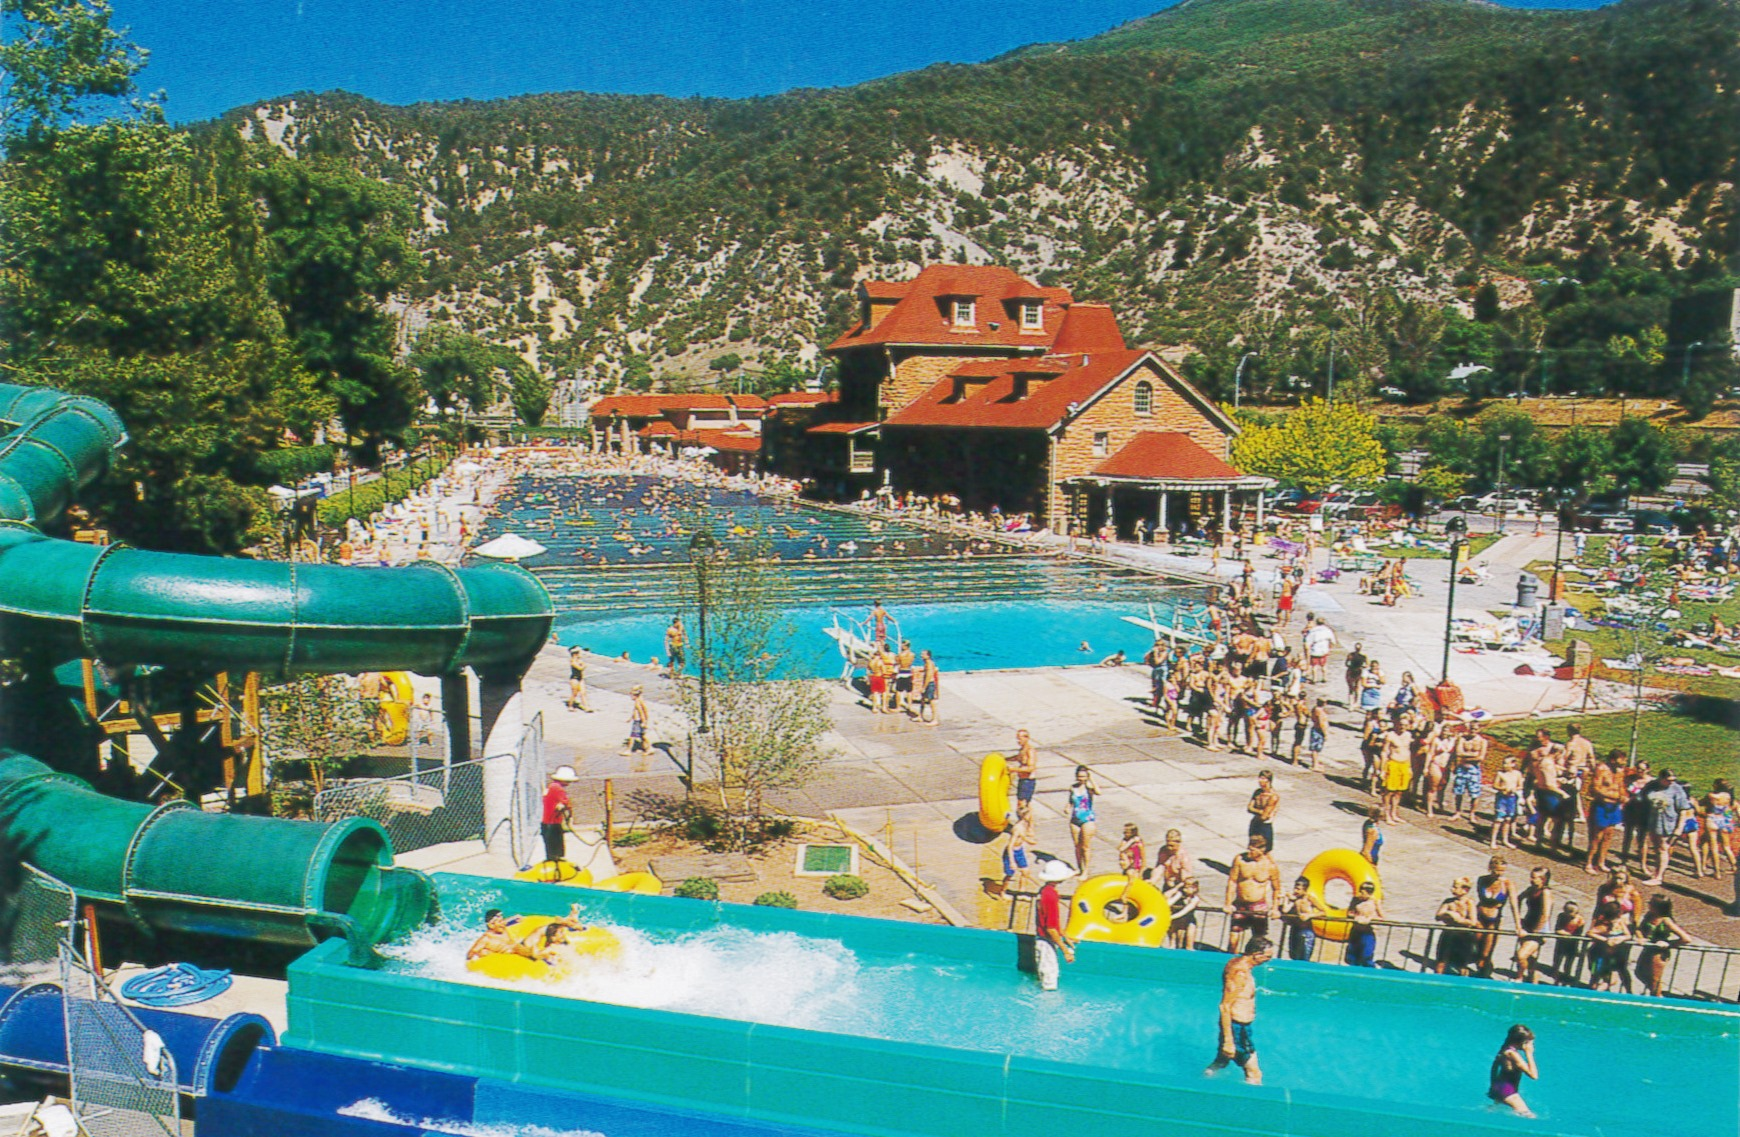 Glenwood Springs, Colorado, is home to the largest outdoor mineral hot springs pool in the world. Resort facilities were built in the 1880s.